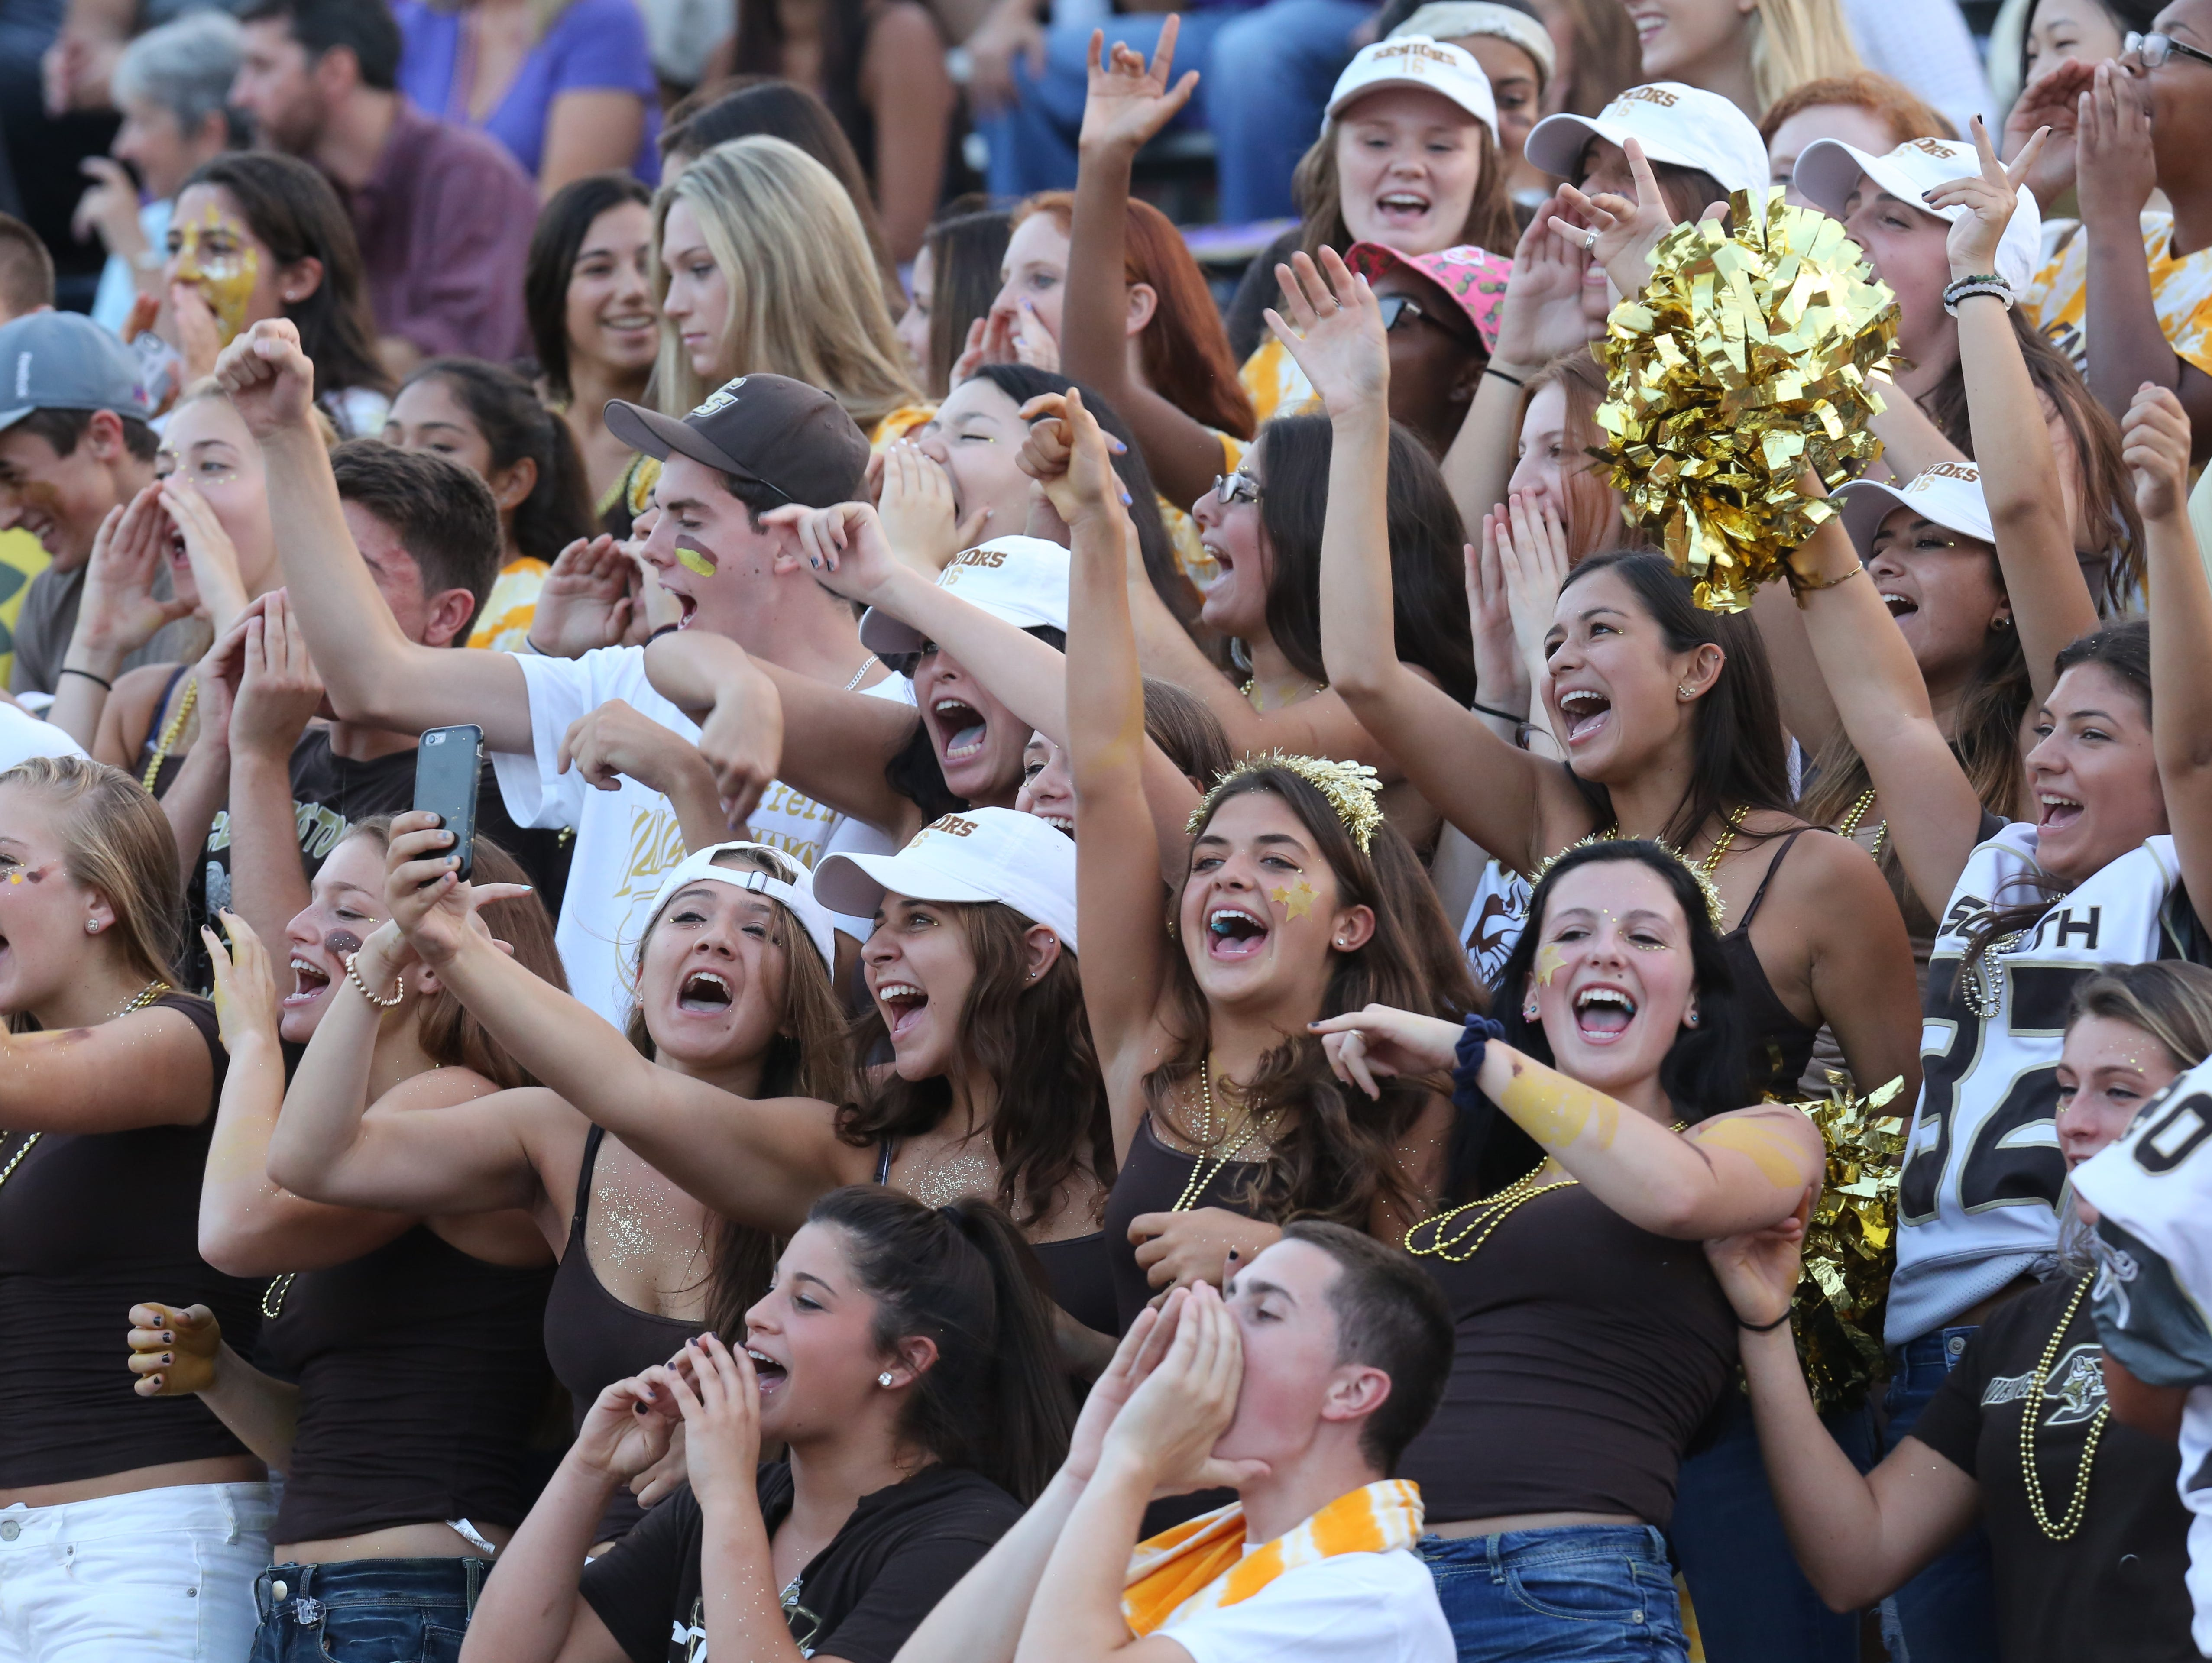 Clarkstown North plays at Clarkstown South in West Nyack Sept. 4, 2015.